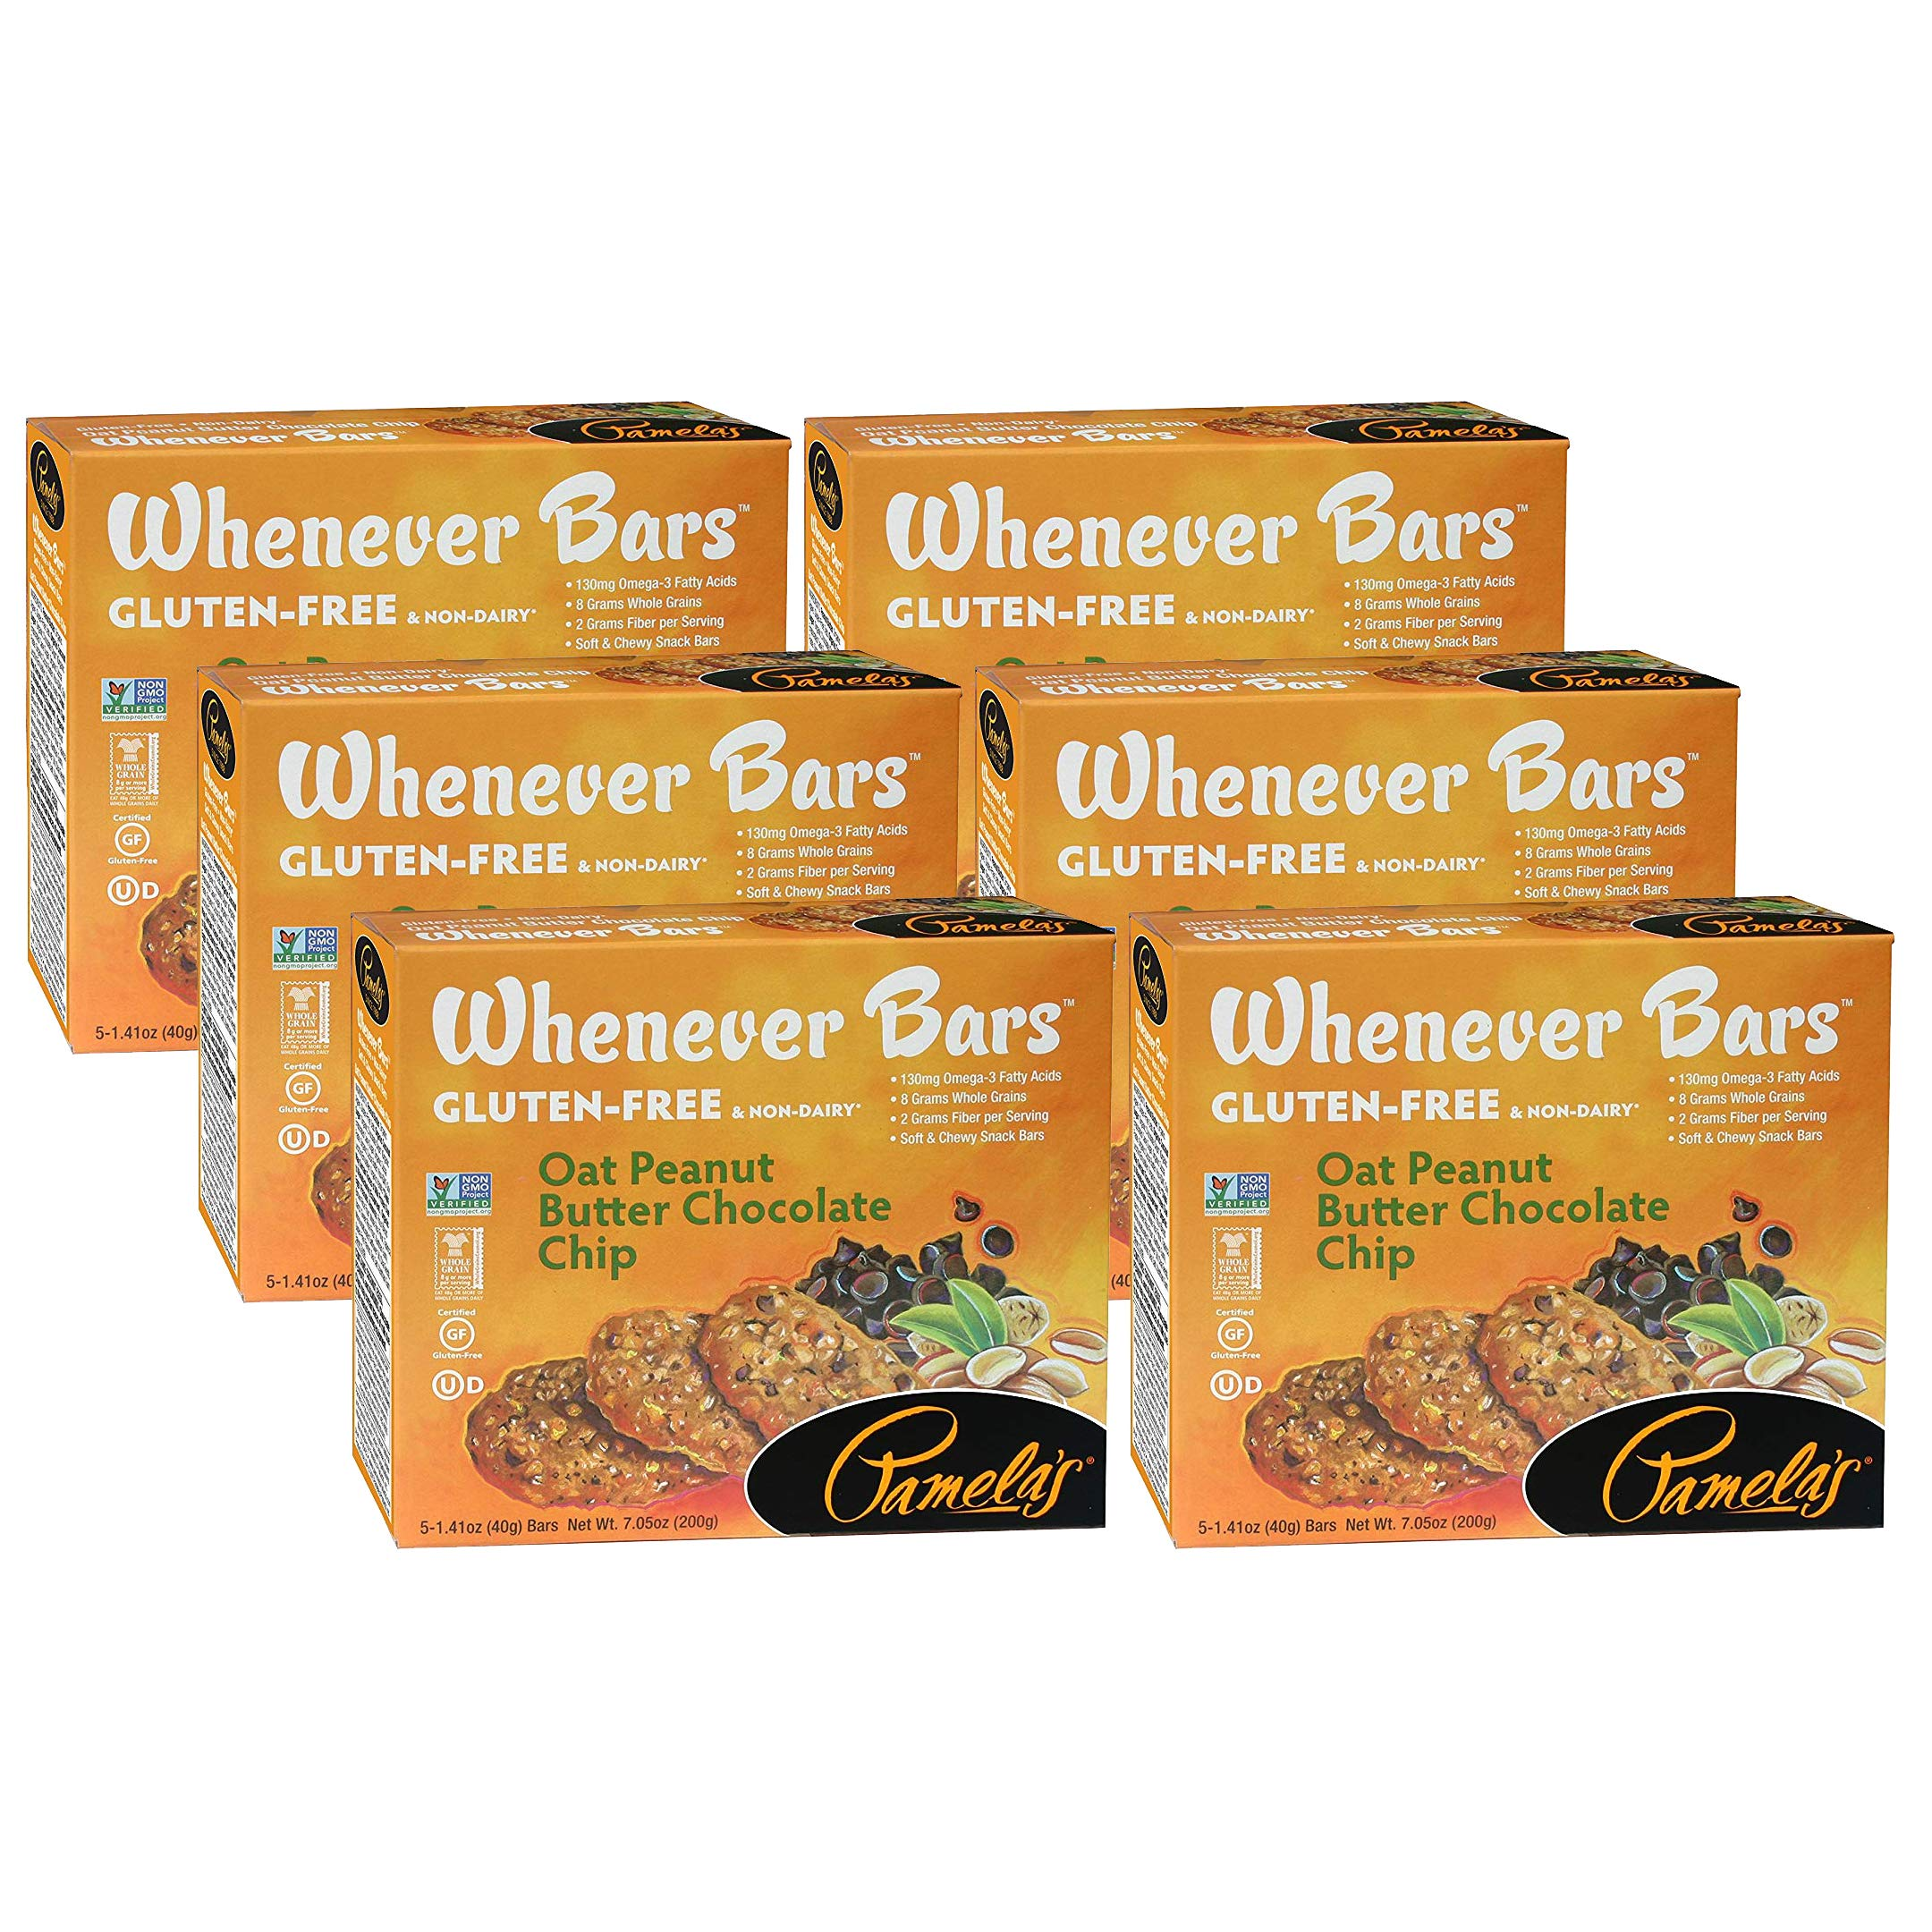 Pamela's Products Gluten Free Whenever Bars, Oat Peanut Chocolate Chip, 5 Bars per Box, 6 Count by Pamela's Products